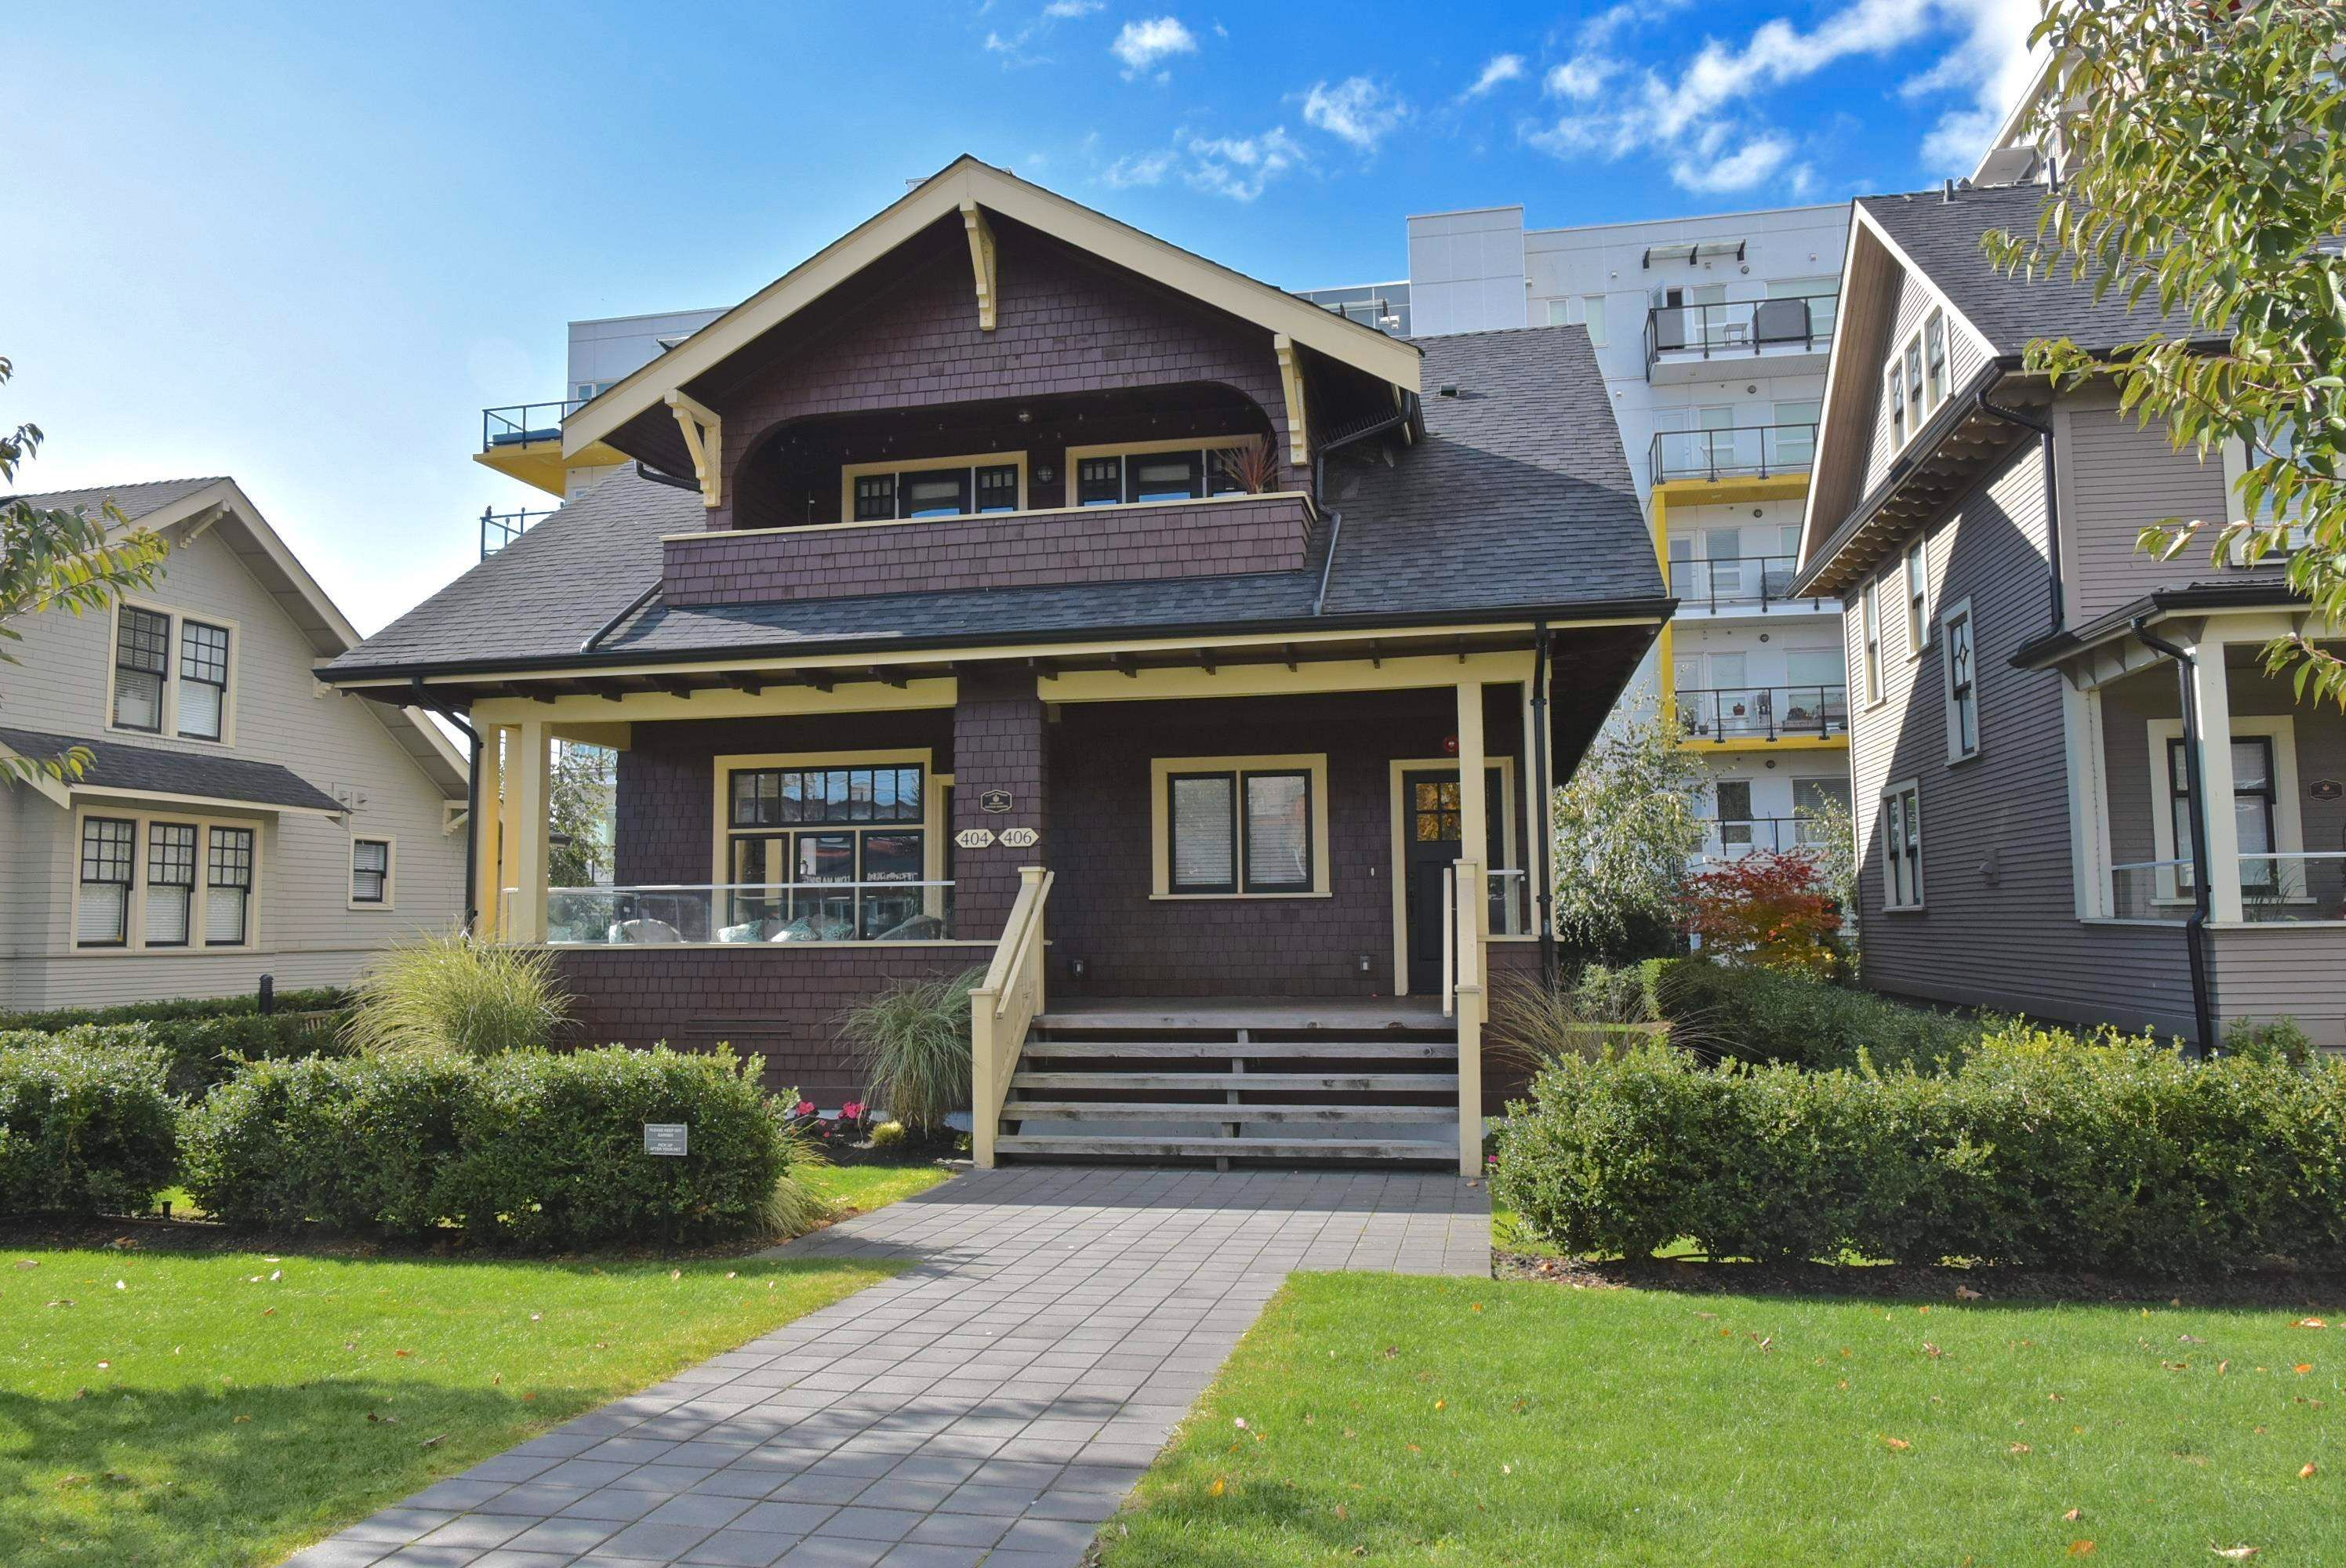 """Main Photo: 406 EIGHTH Street in New Westminster: Uptown NW 1/2 Duplex for sale in """"The Lotus"""" : MLS®# R2625473"""